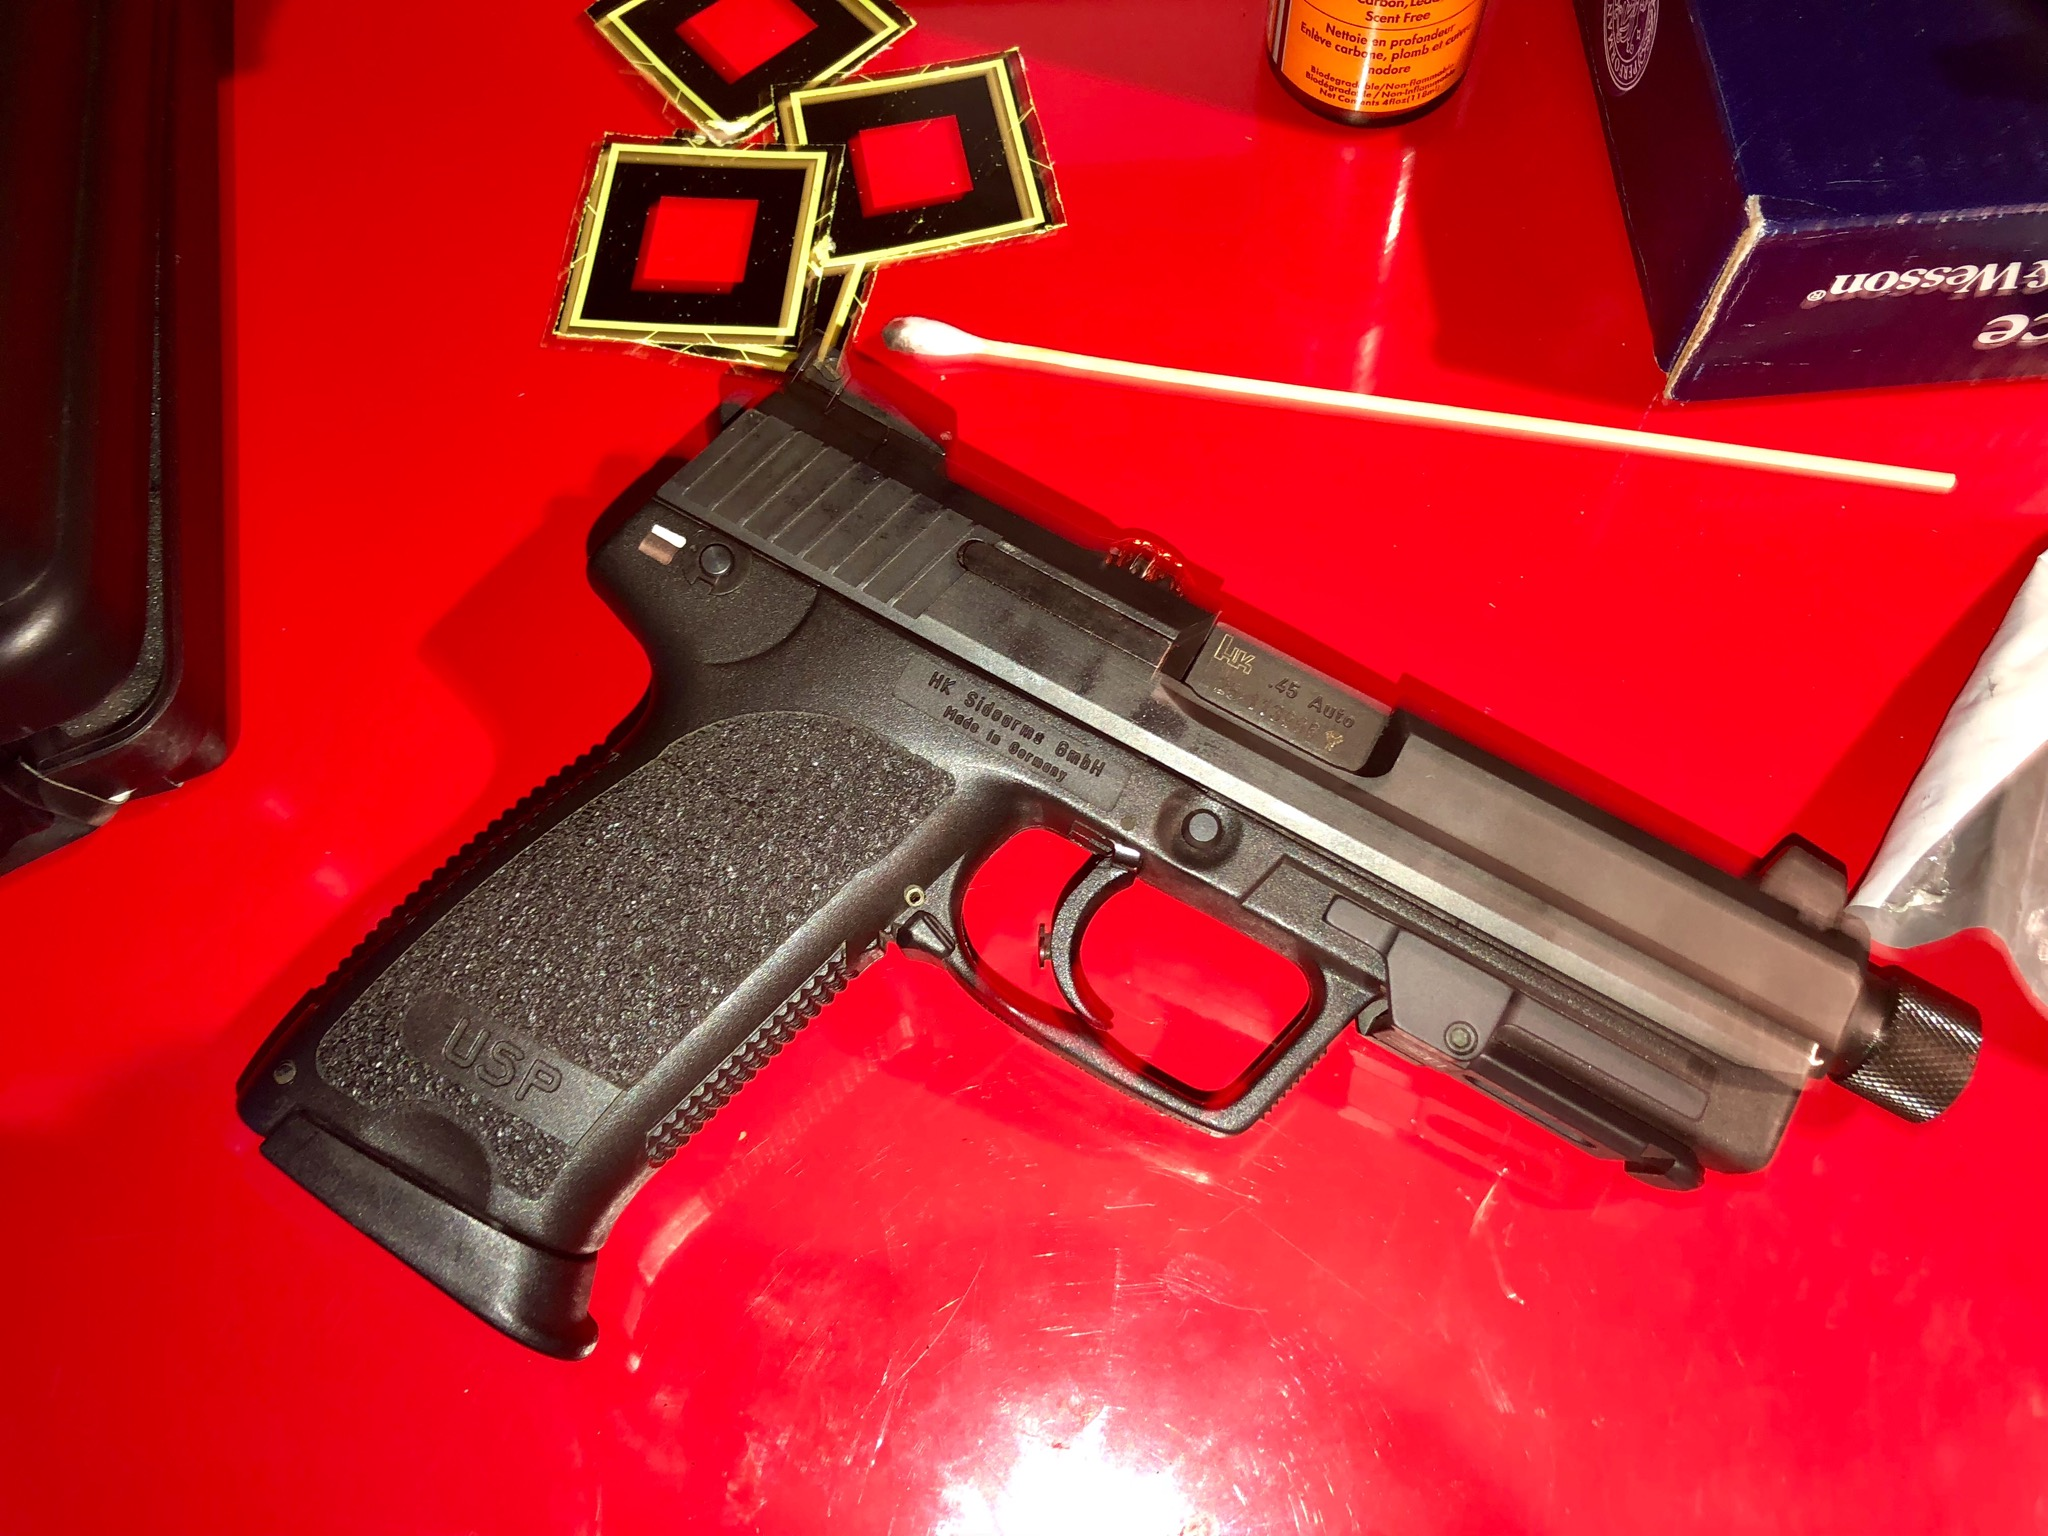 What is your #1 HK handgun modell of all time?-8692d5c4-3399-4932-b65d-0563ca476216.jpeg